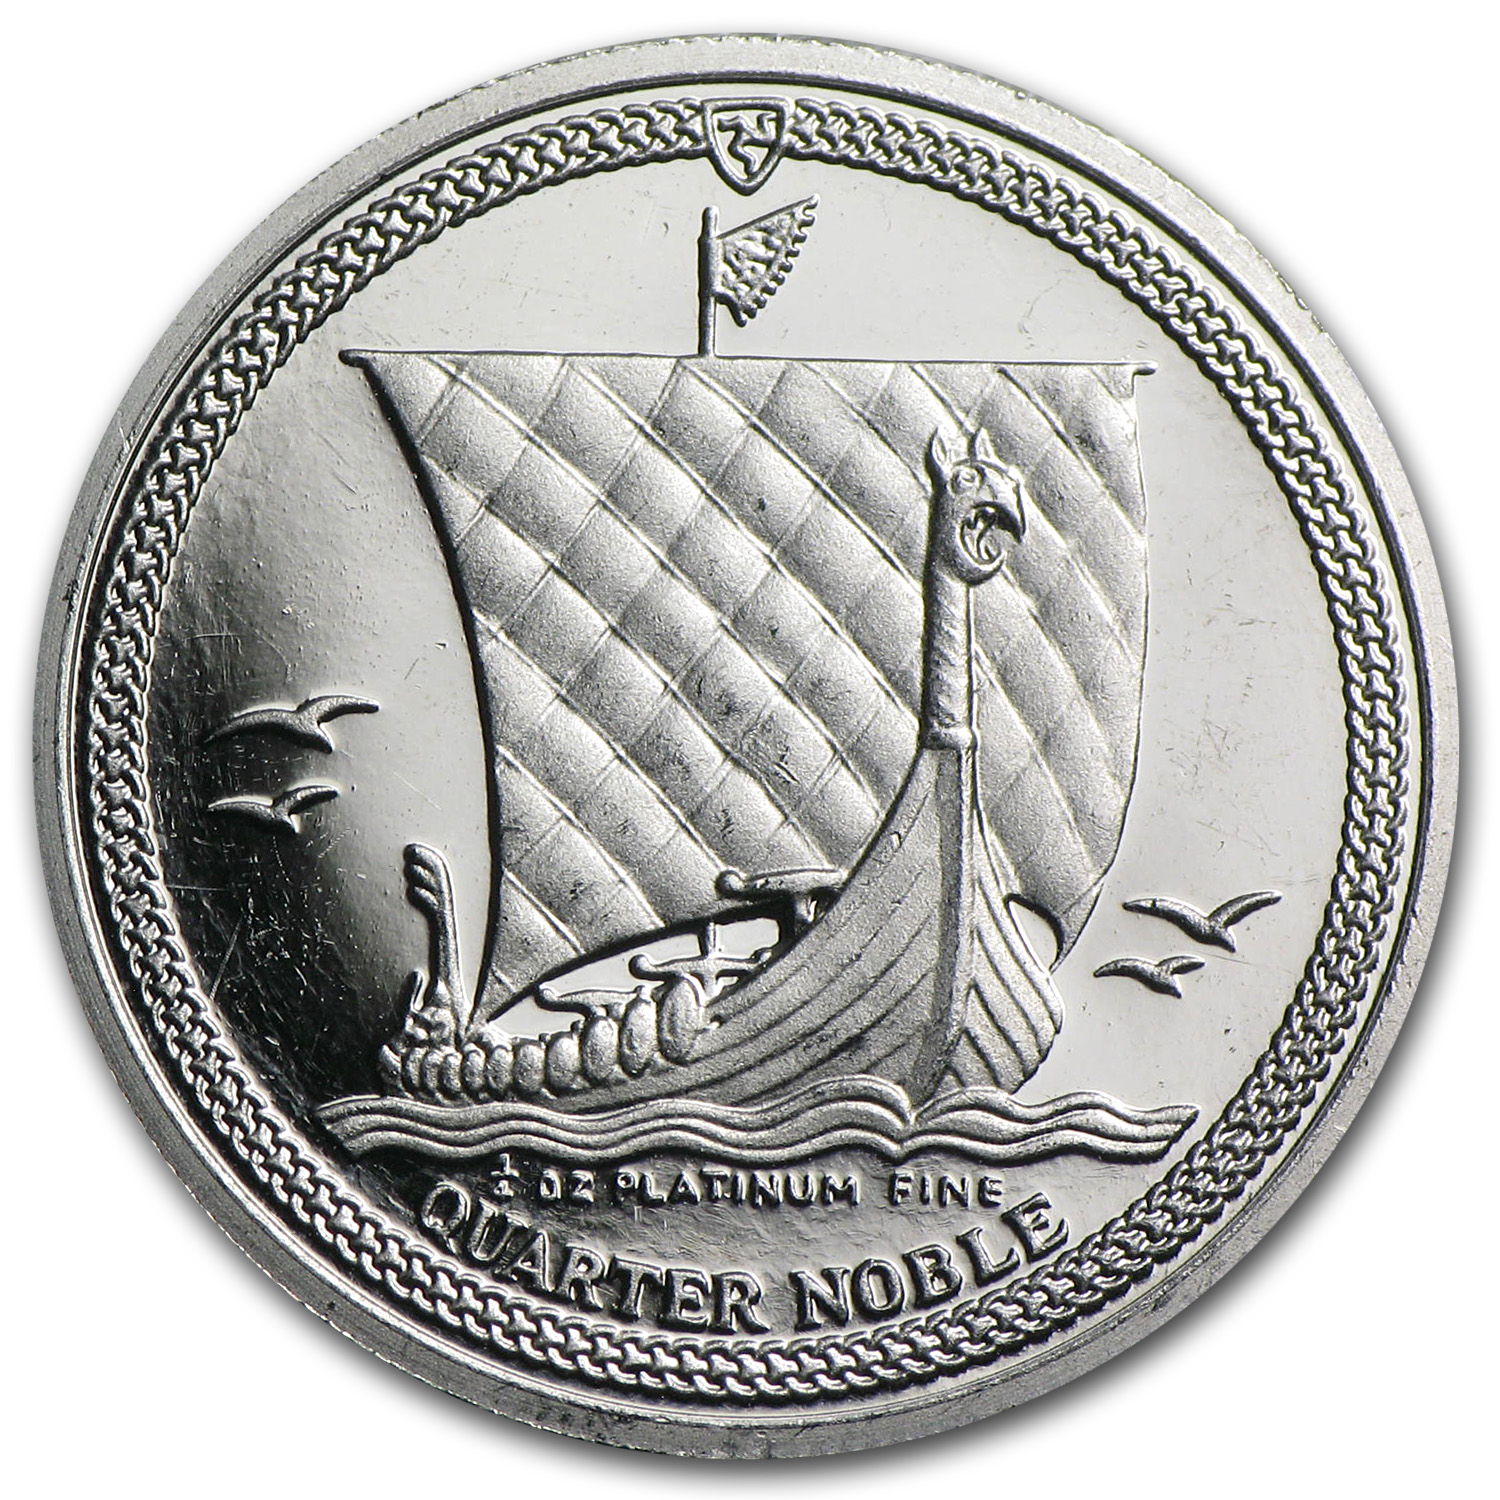 1/4 oz Isle of Man Platinum Noble Proof